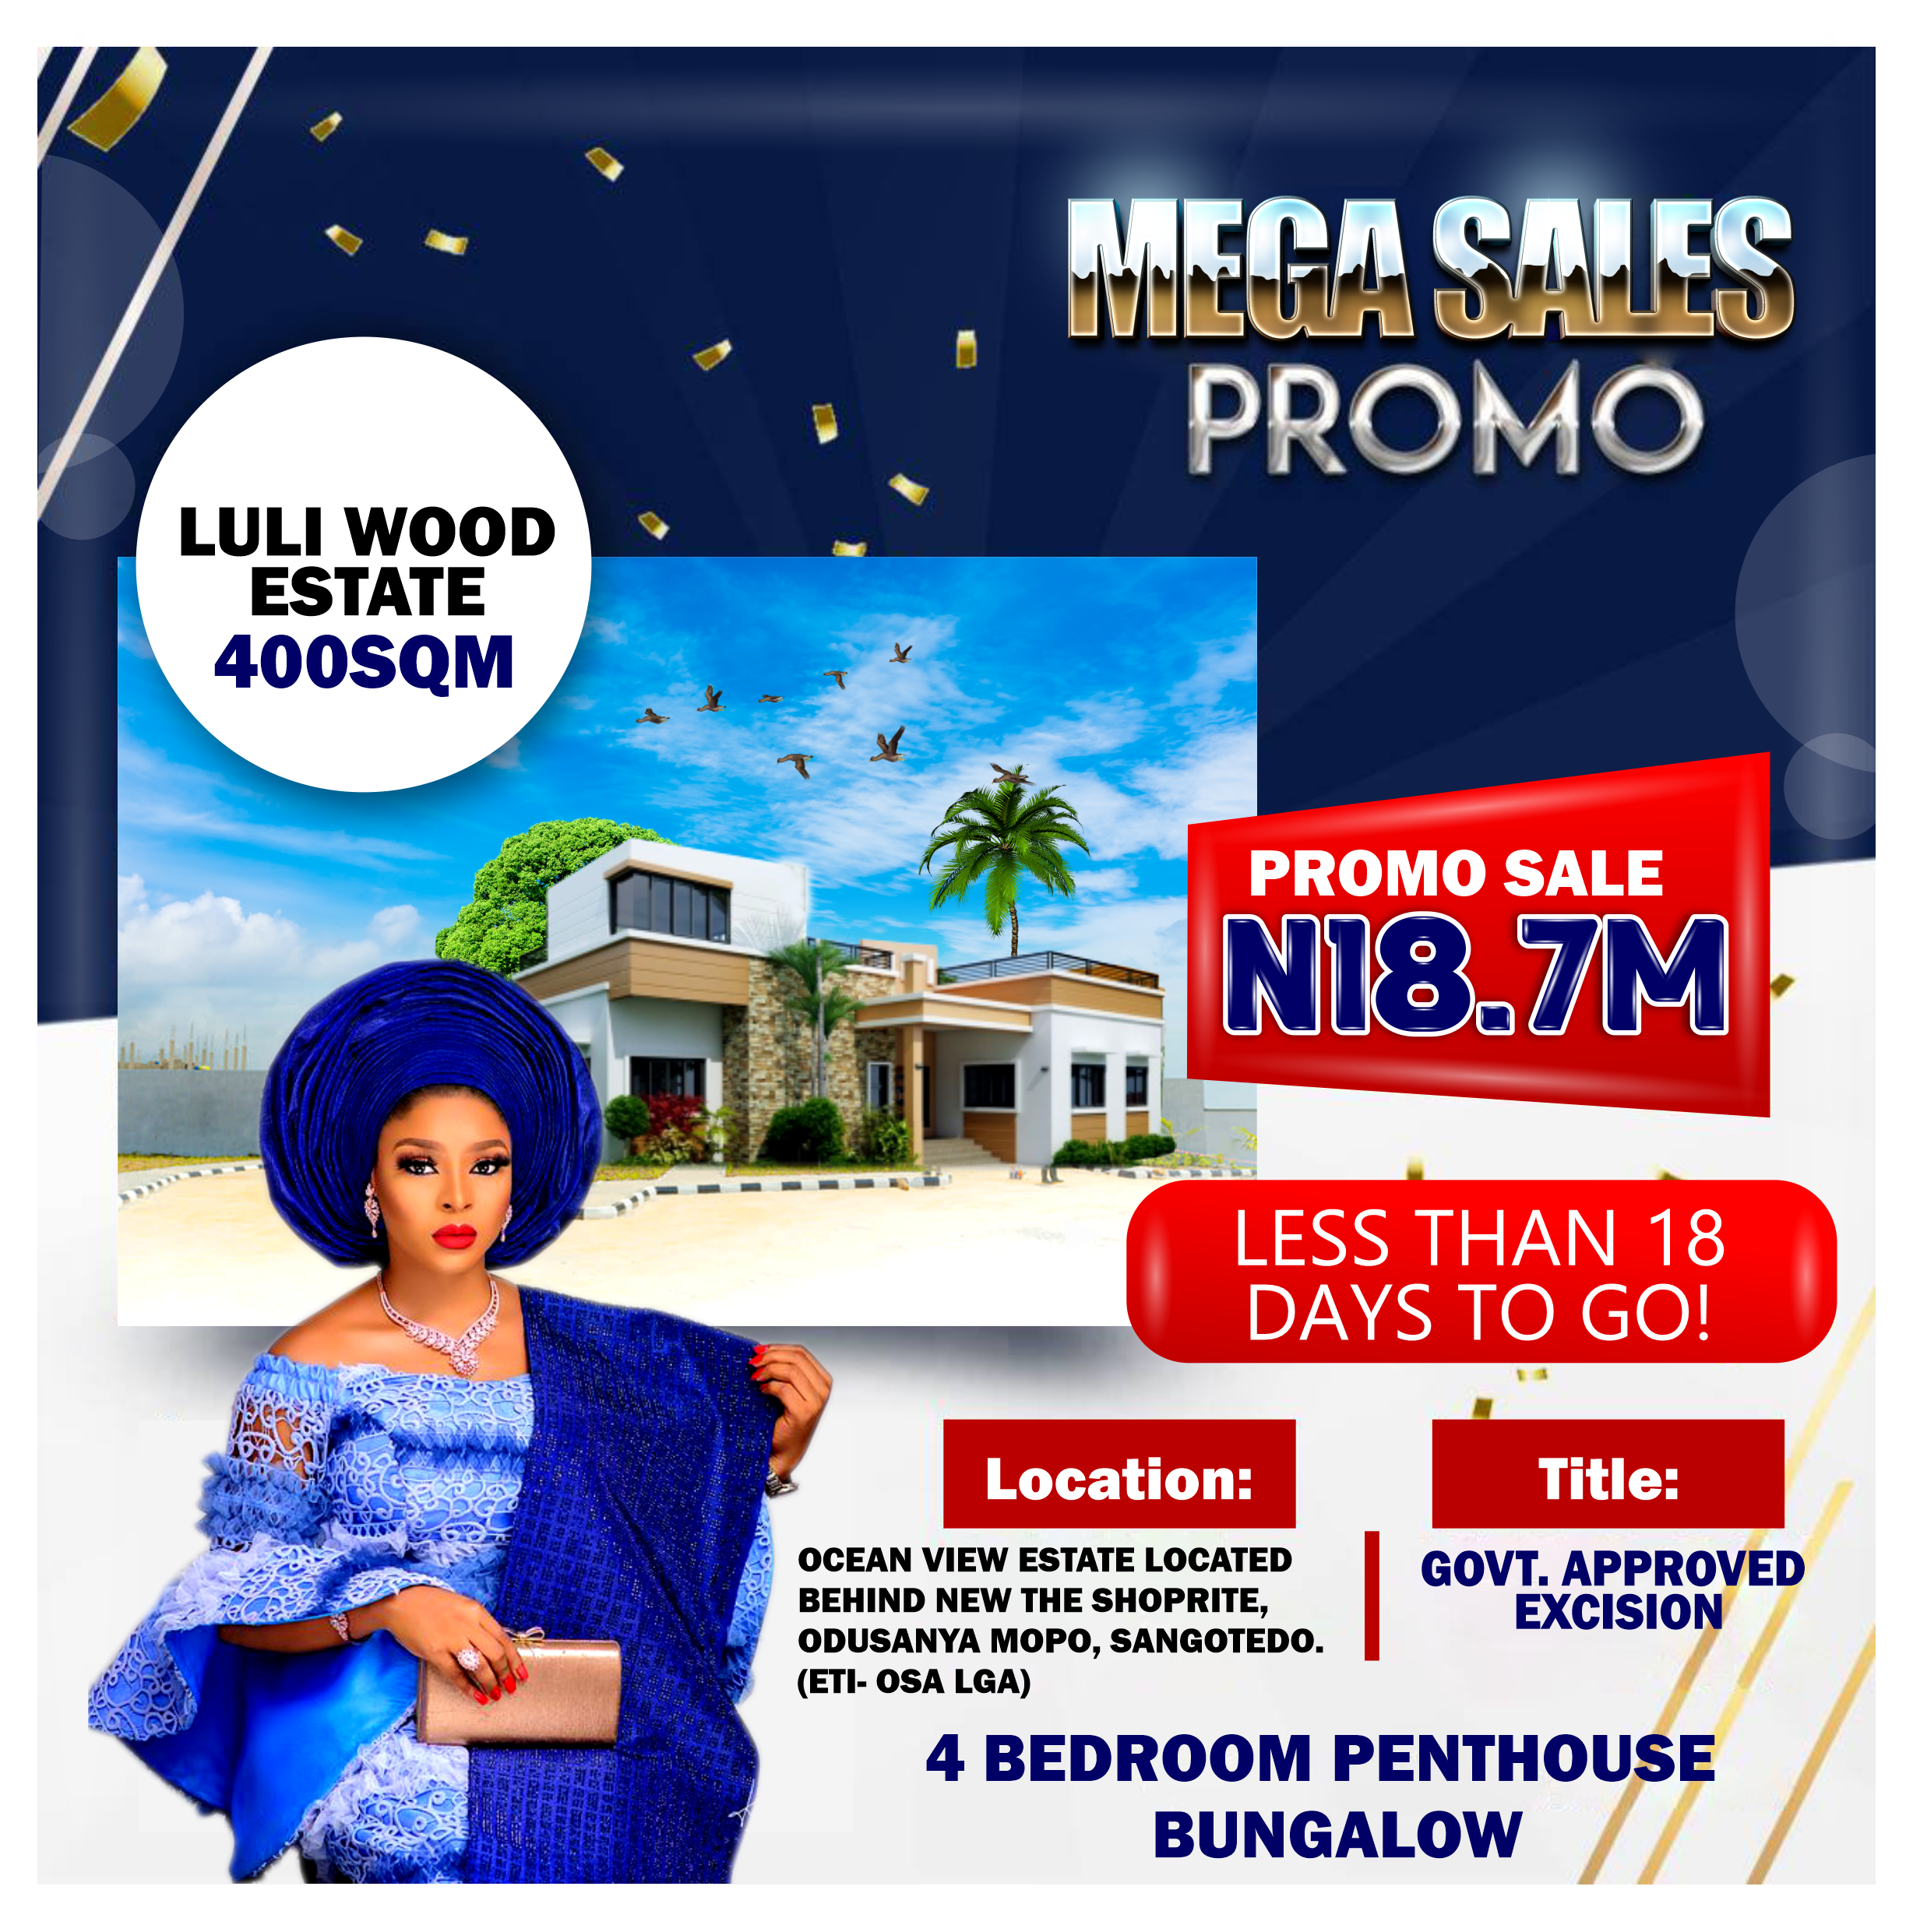 LESS THAN 18 DAYS TO GO 4 BEDROOM